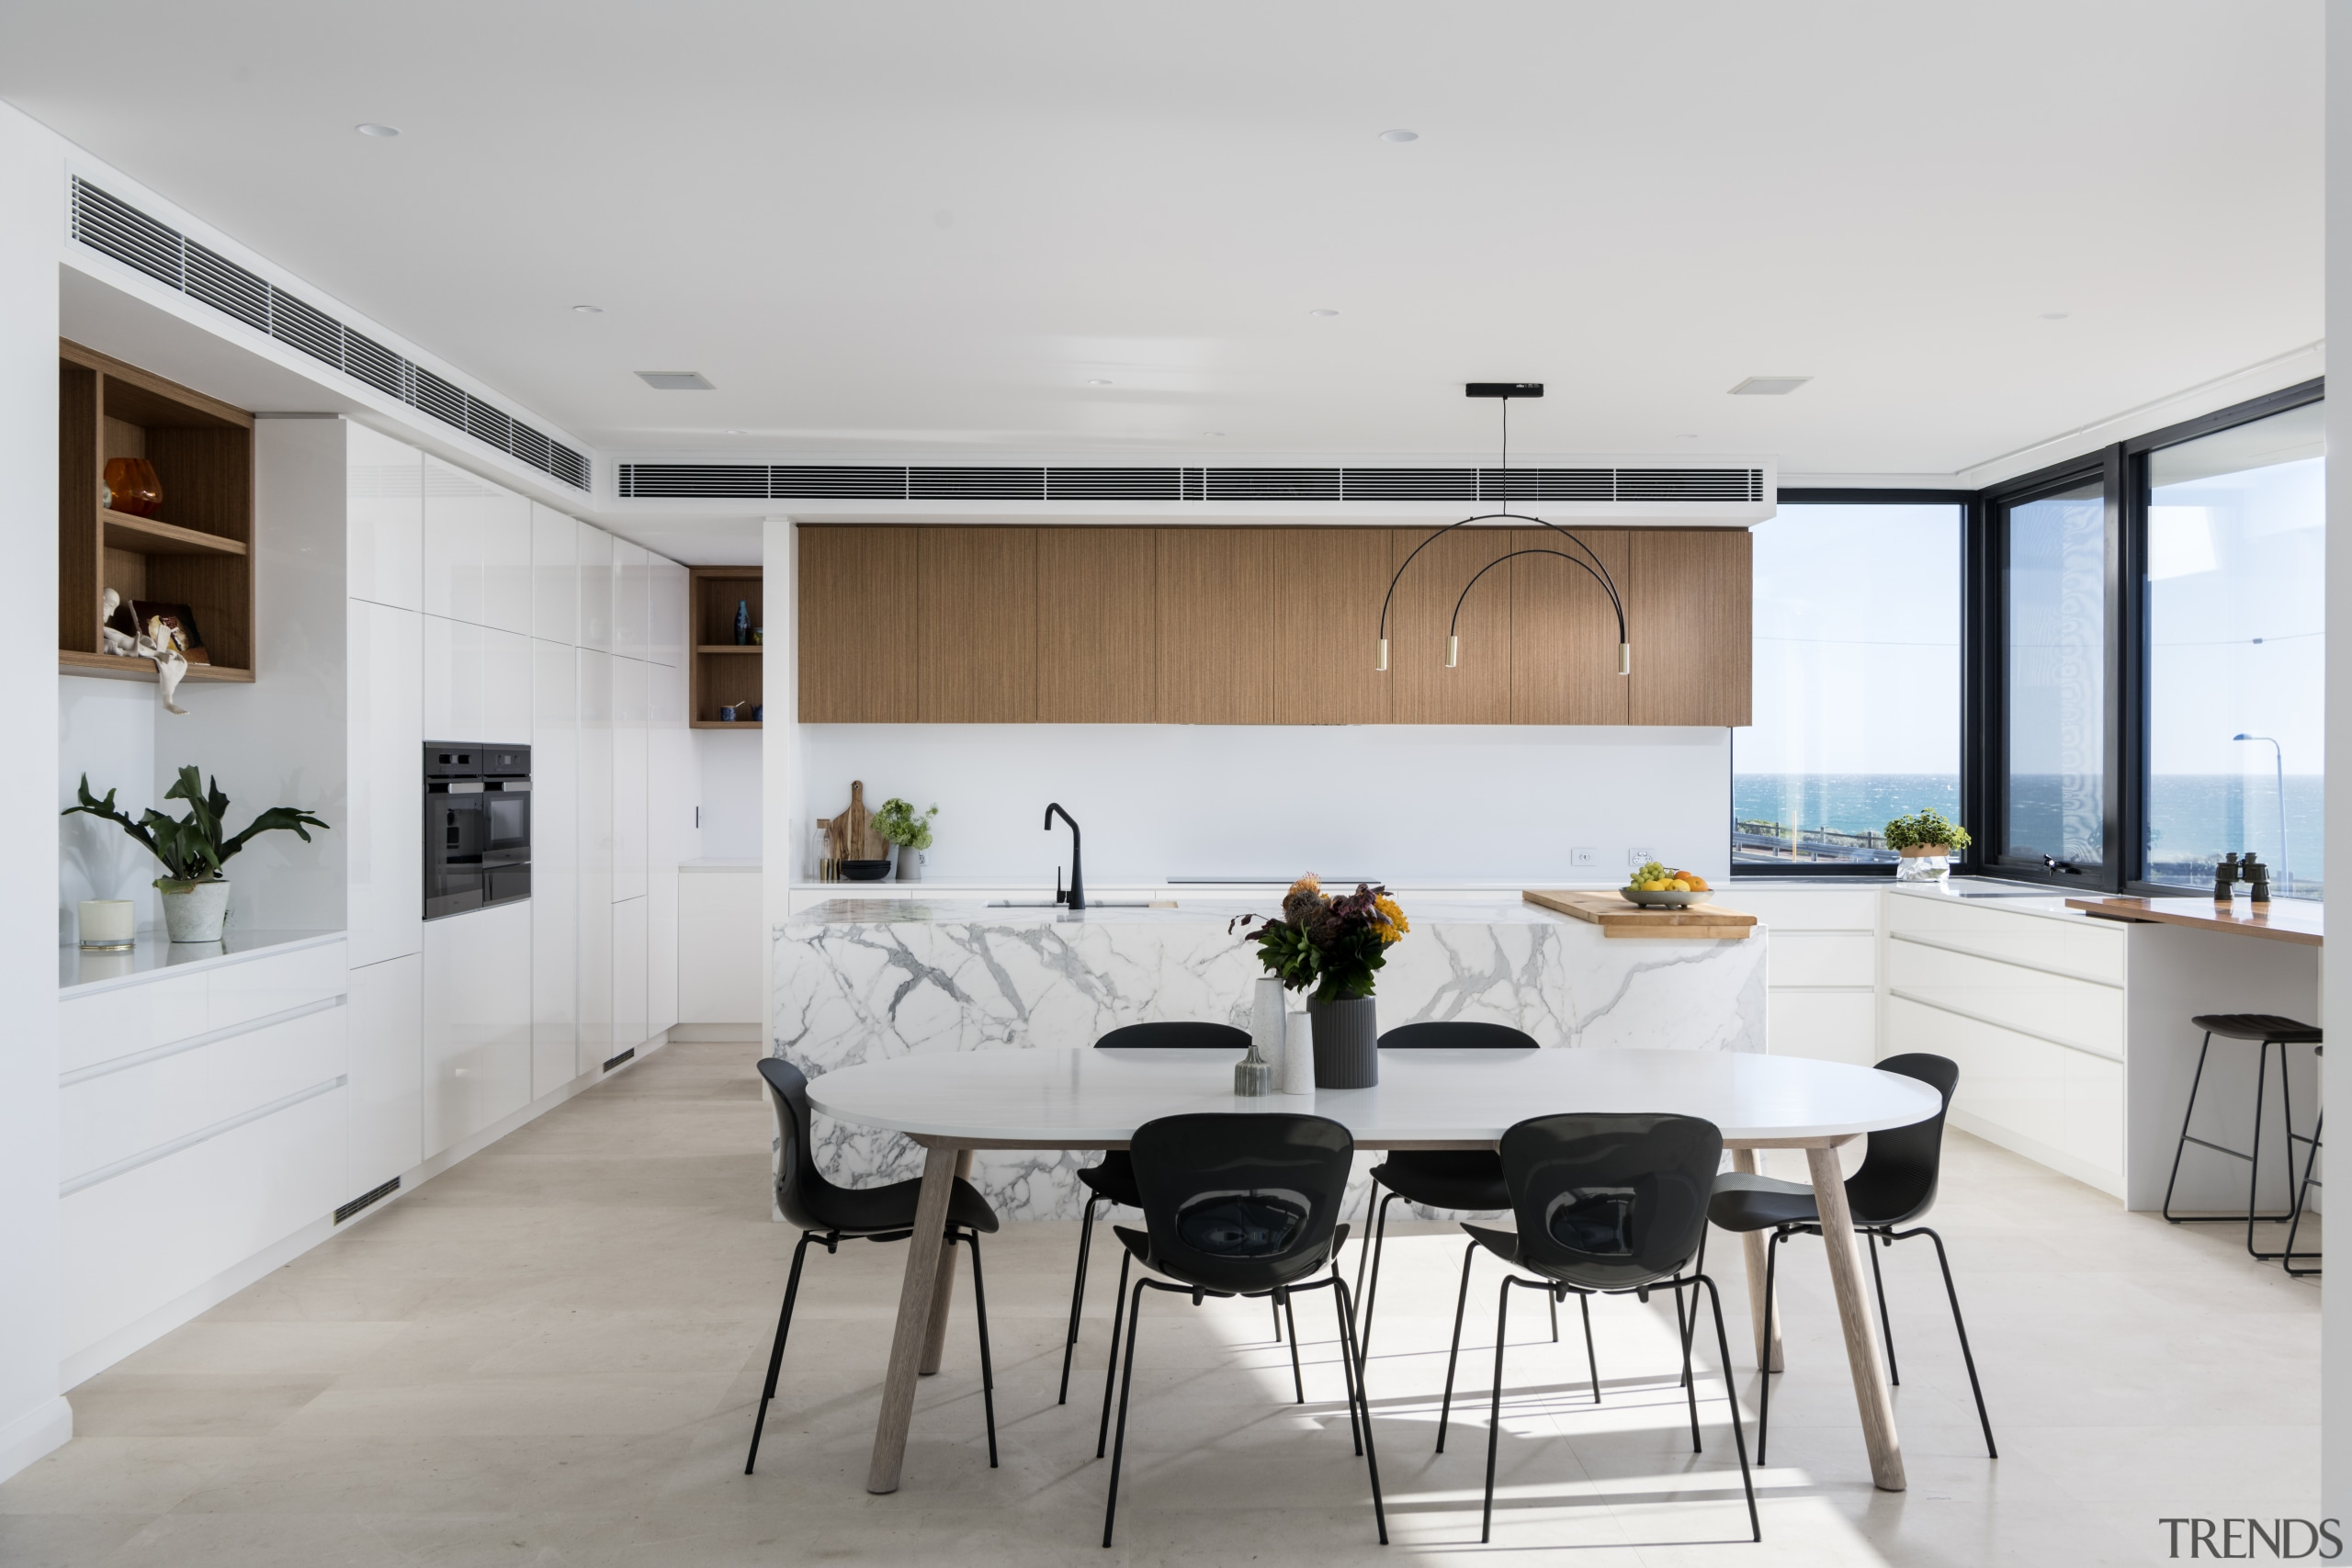 A long marble-clad kitchen island is the central architecture, bar stool, cabinetry, chairs, countertop, dining room, floor, flooring, furniture, home, house, interior design, kitchen, room, table, gray, white, chopping board